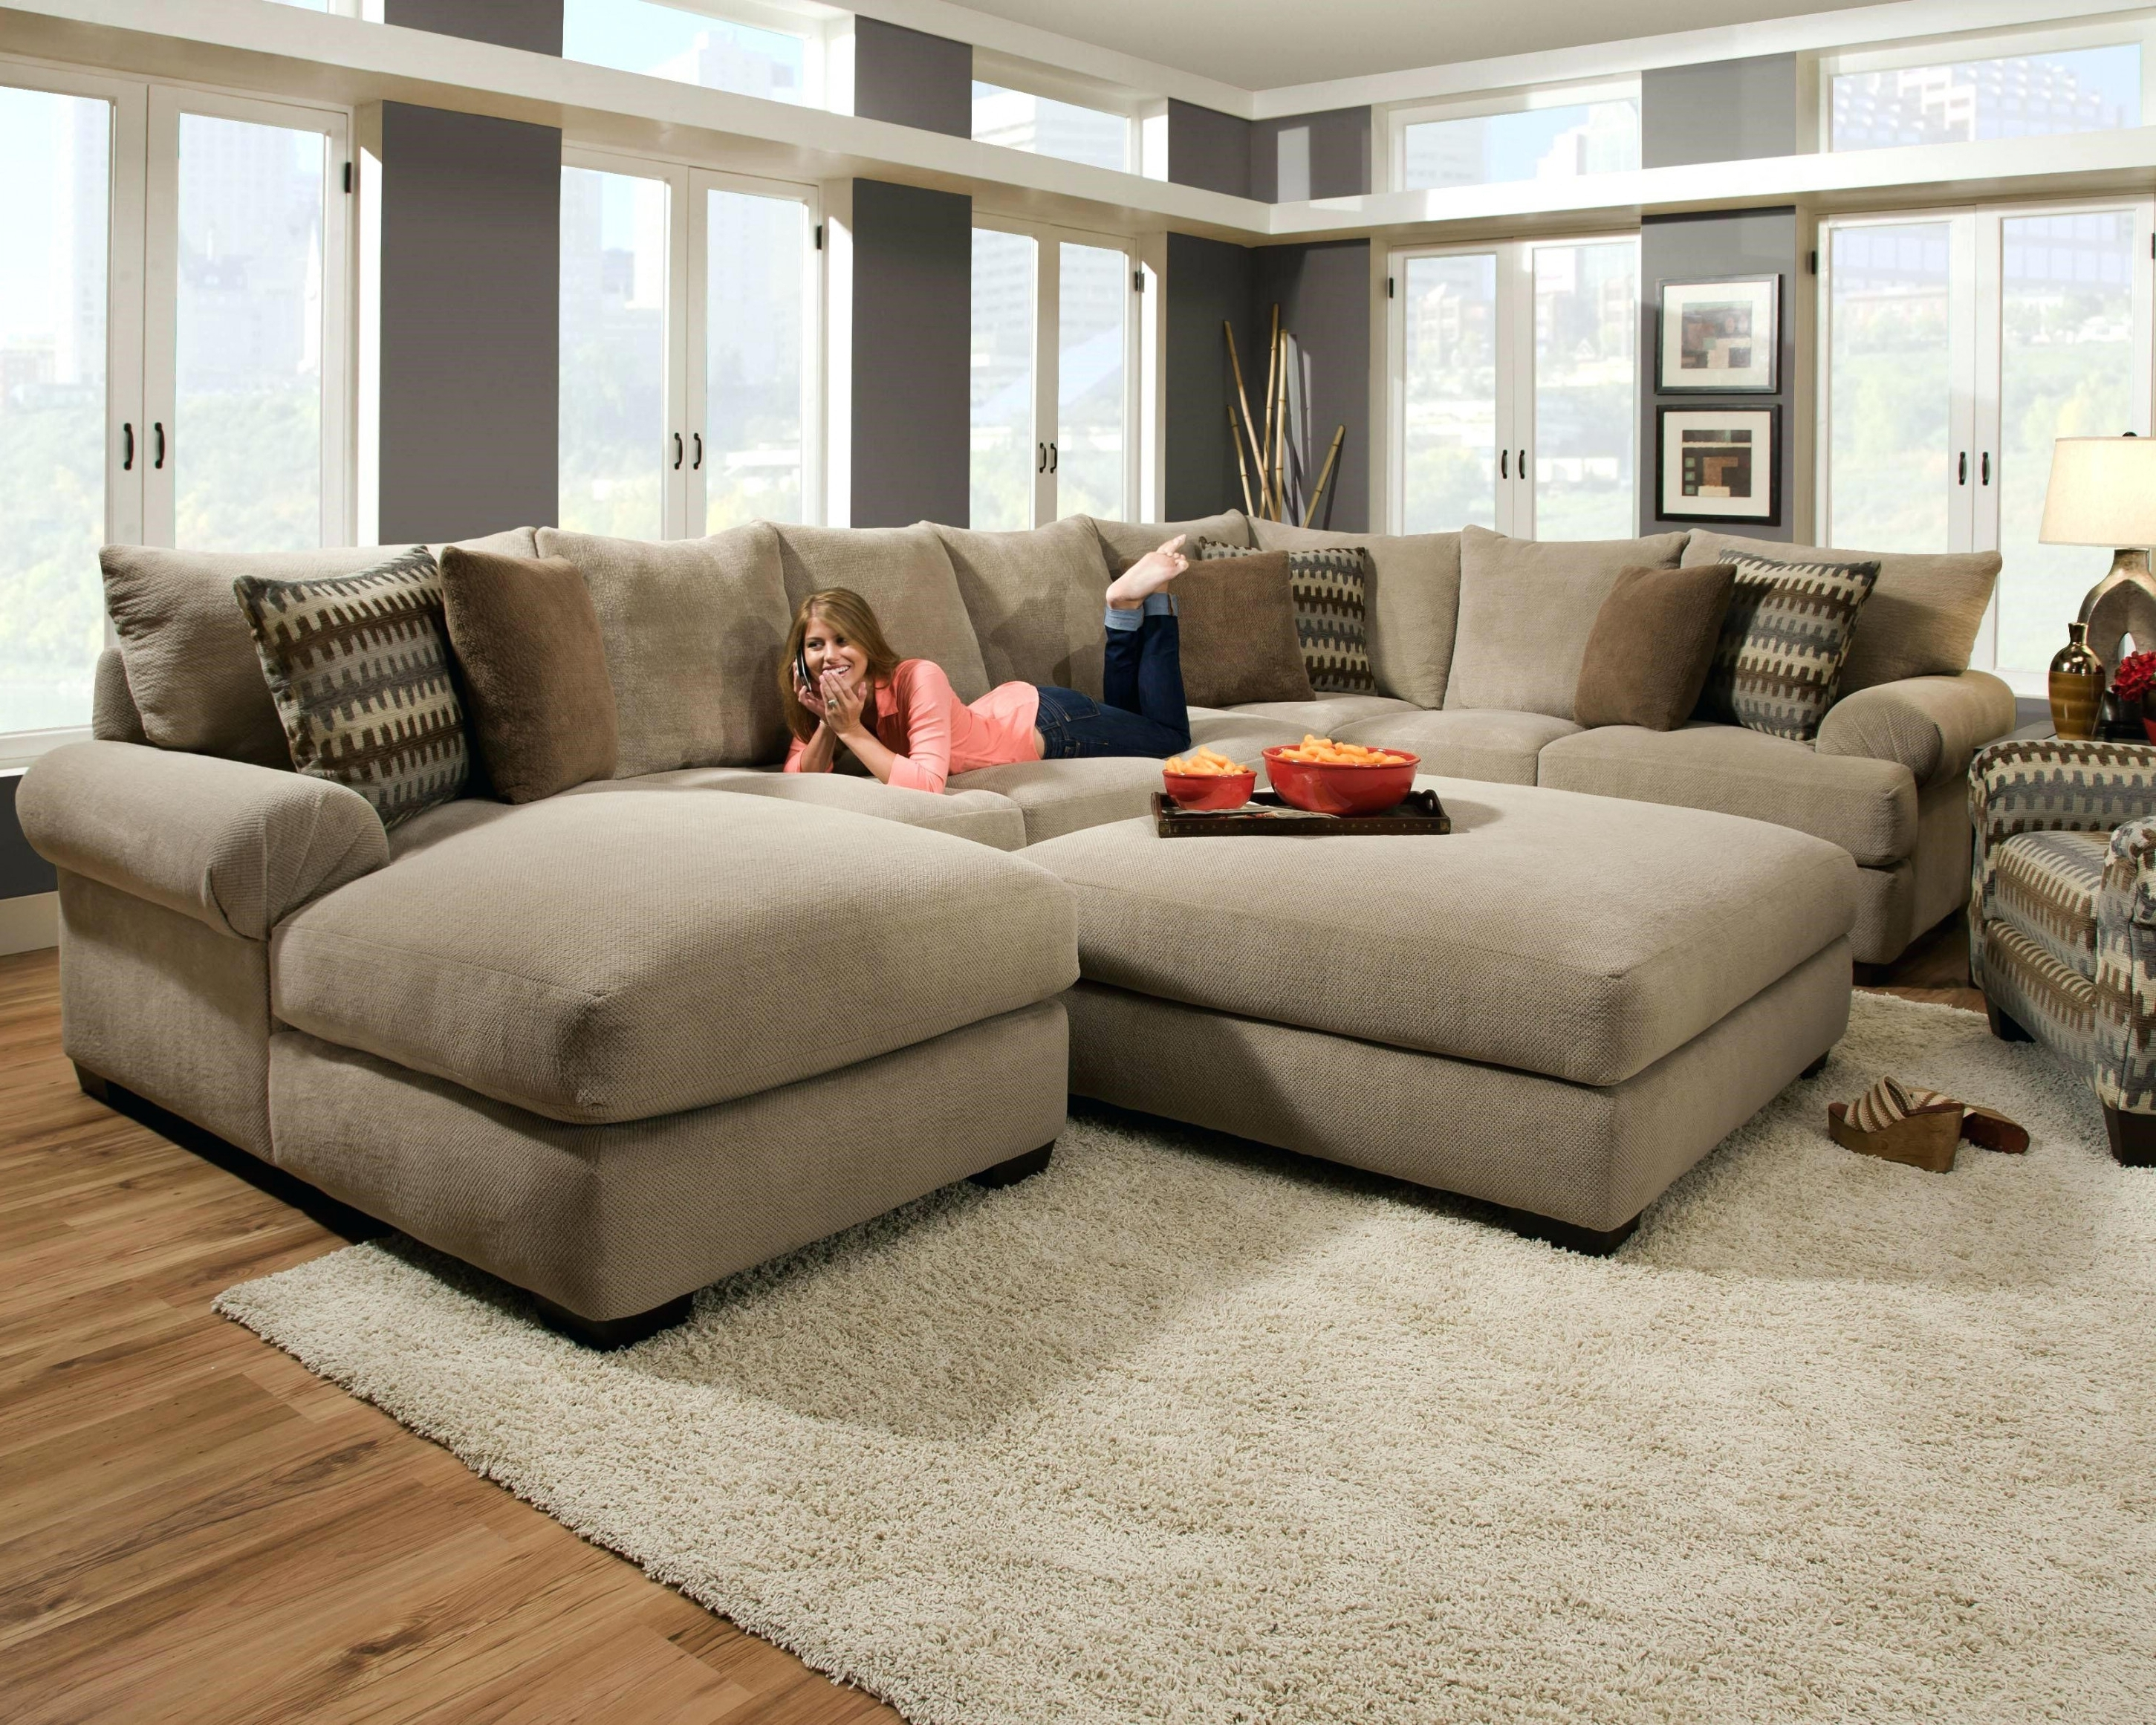 Best And Newest Sectional Sofas At Big Lots Intended For Sectional Sofas Big Lots (View 4 of 15)